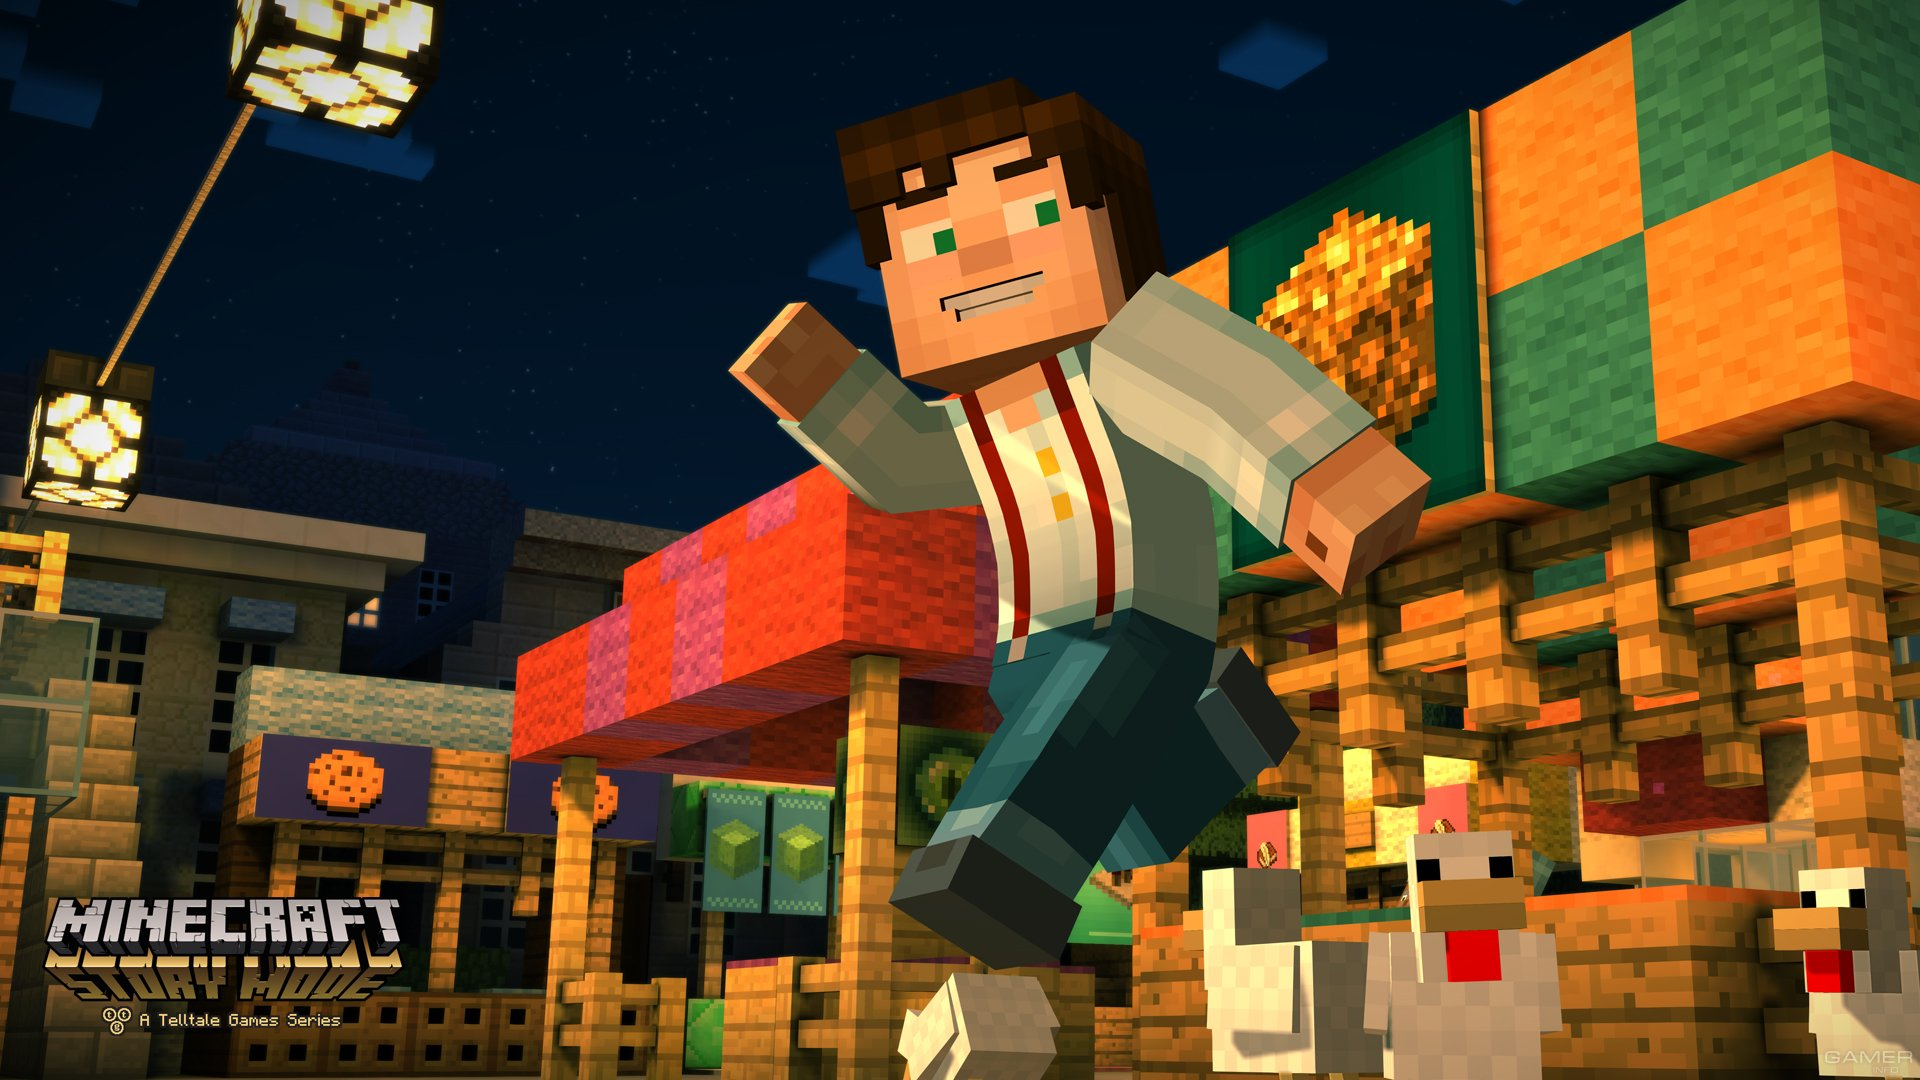 Minecraft: Story Mode v1.13 Full APK - SD Data indir ...